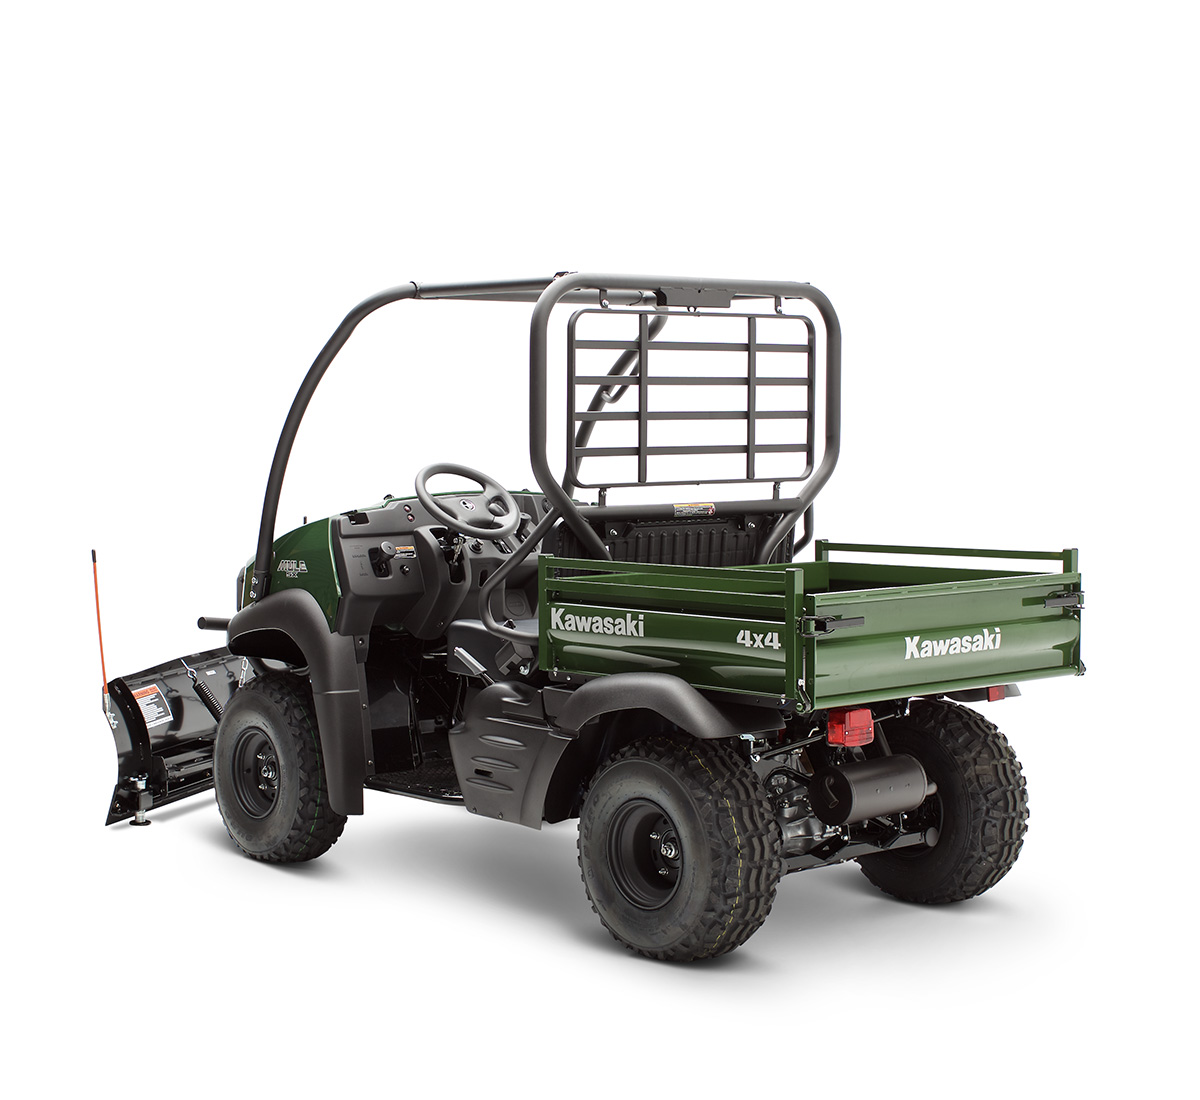 2015 Kawasaki Mule 610 Owners Manual User Guide That Easy Wiring Diagram For Side X Plow Rh Com Parts Specifications